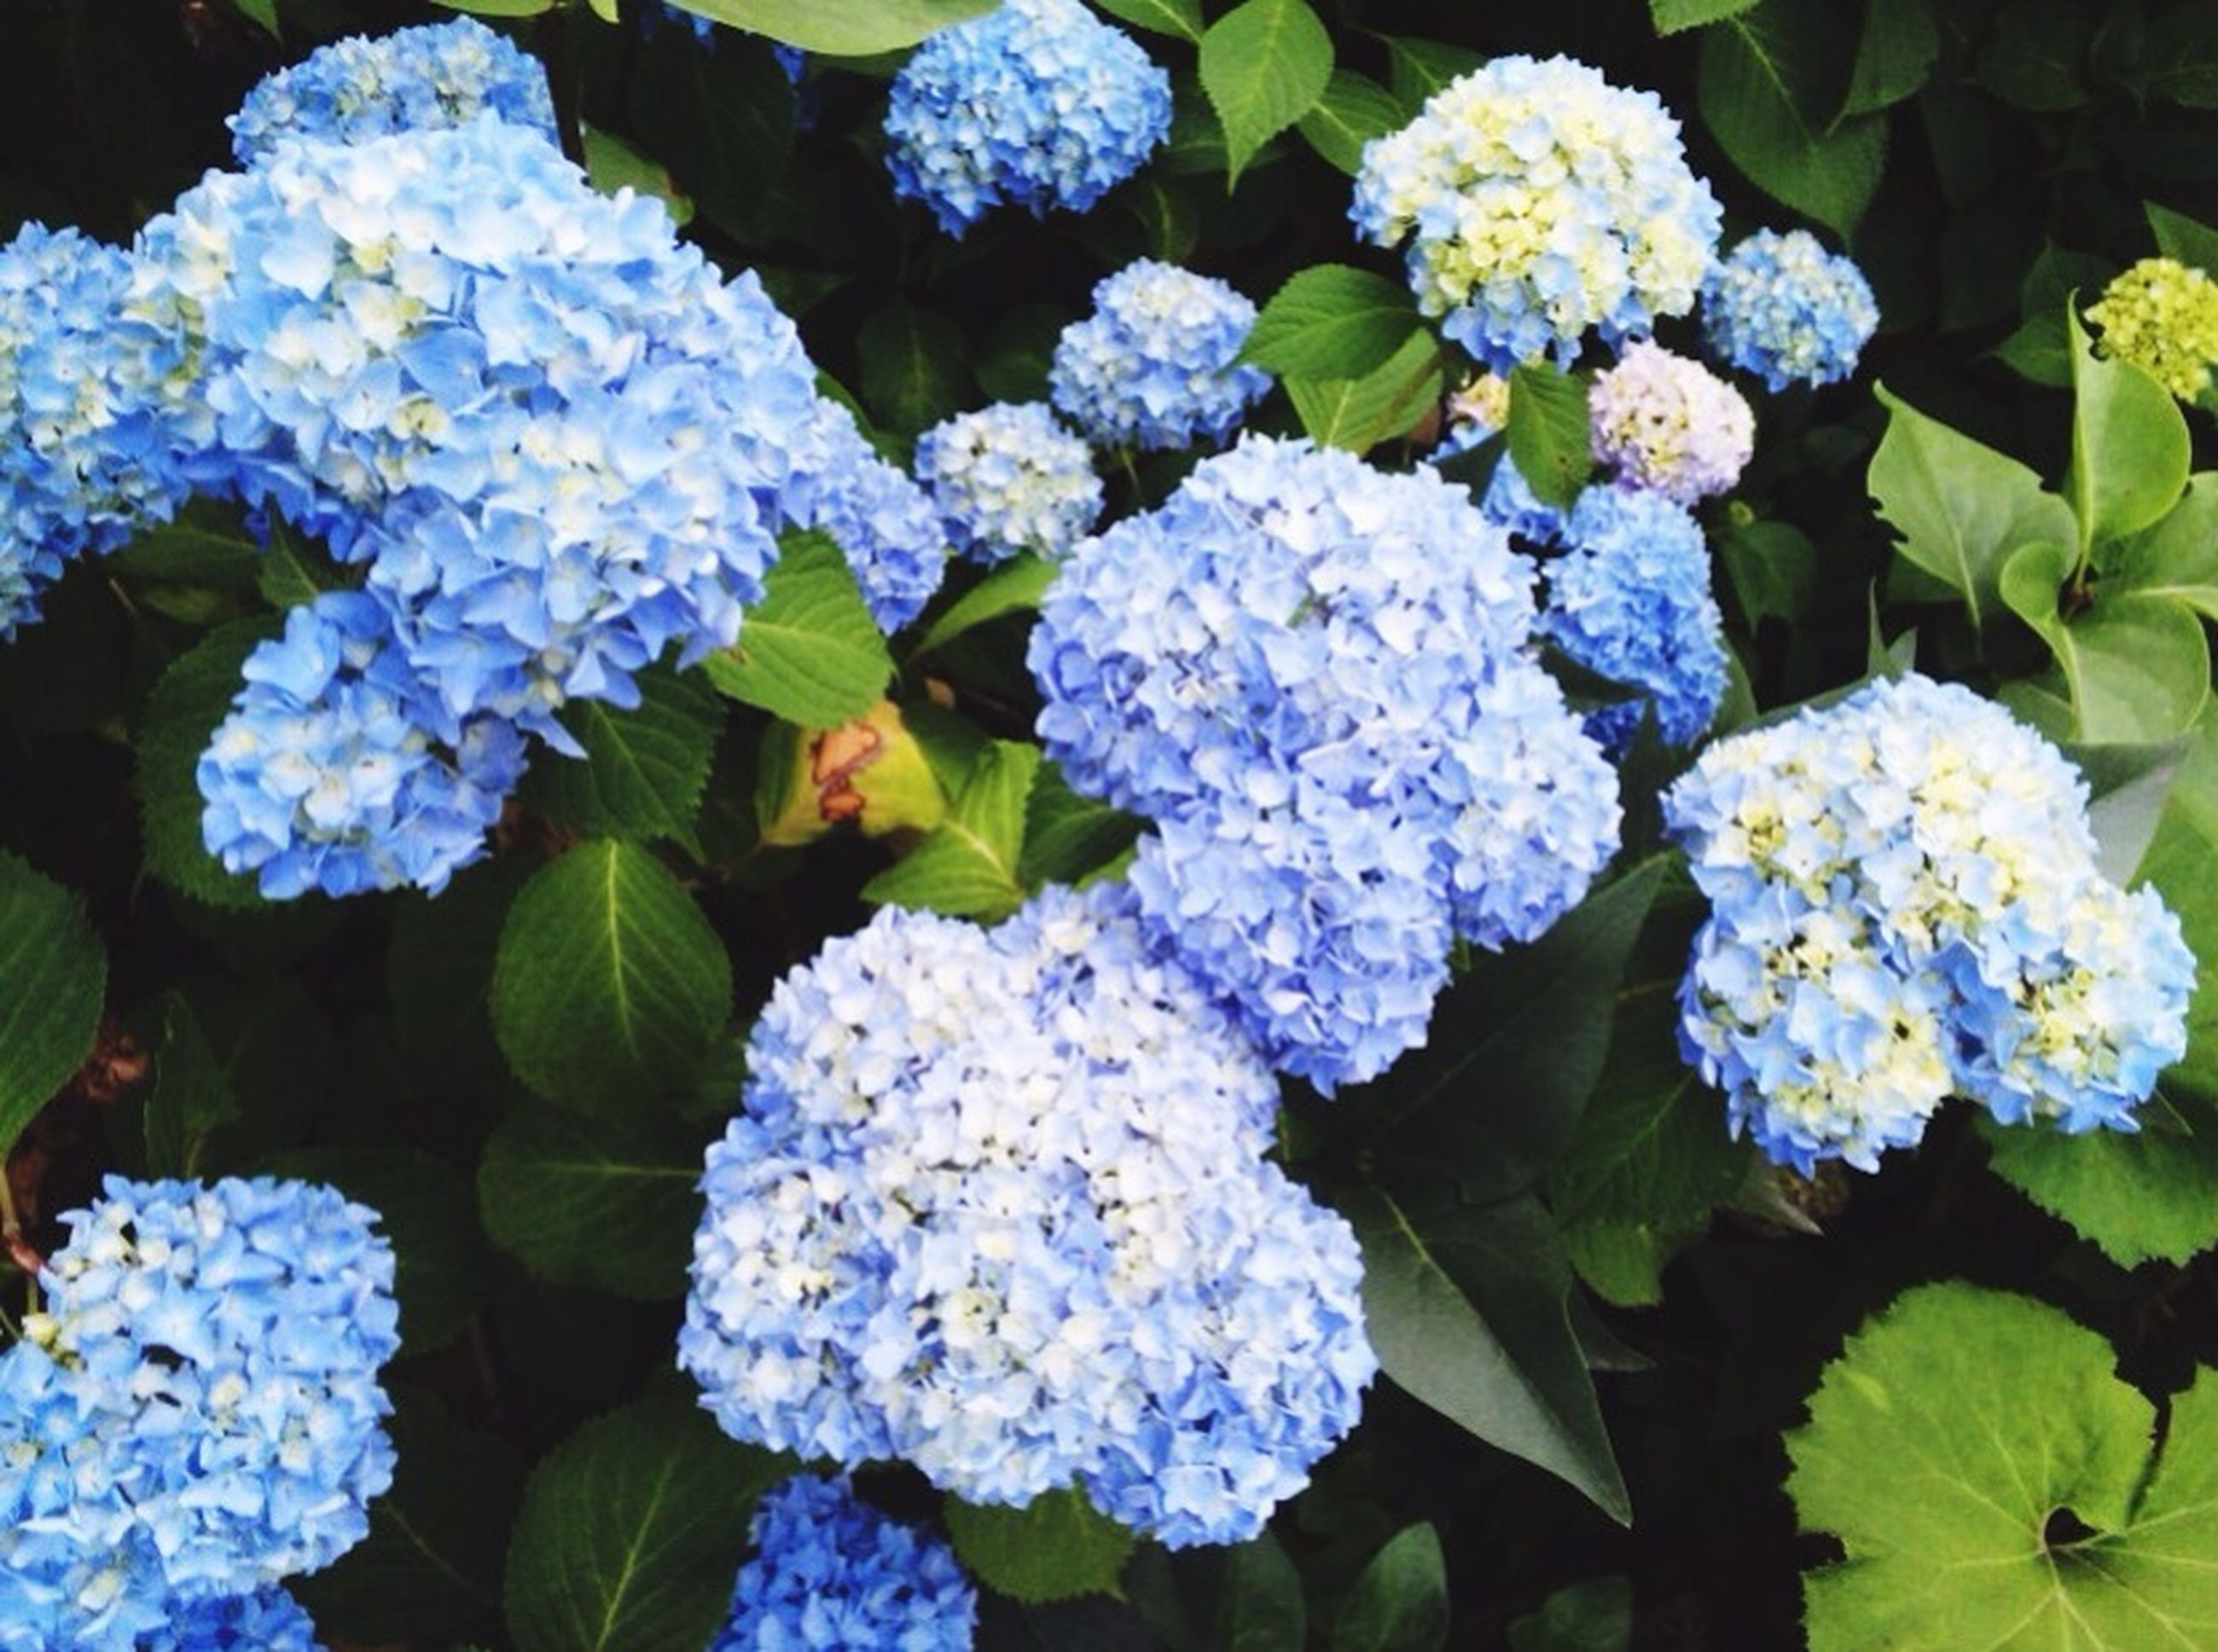 flower, freshness, fragility, petal, beauty in nature, growth, hydrangea, flower head, plant, purple, high angle view, nature, blooming, leaf, bunch of flowers, white color, green color, in bloom, close-up, park - man made space